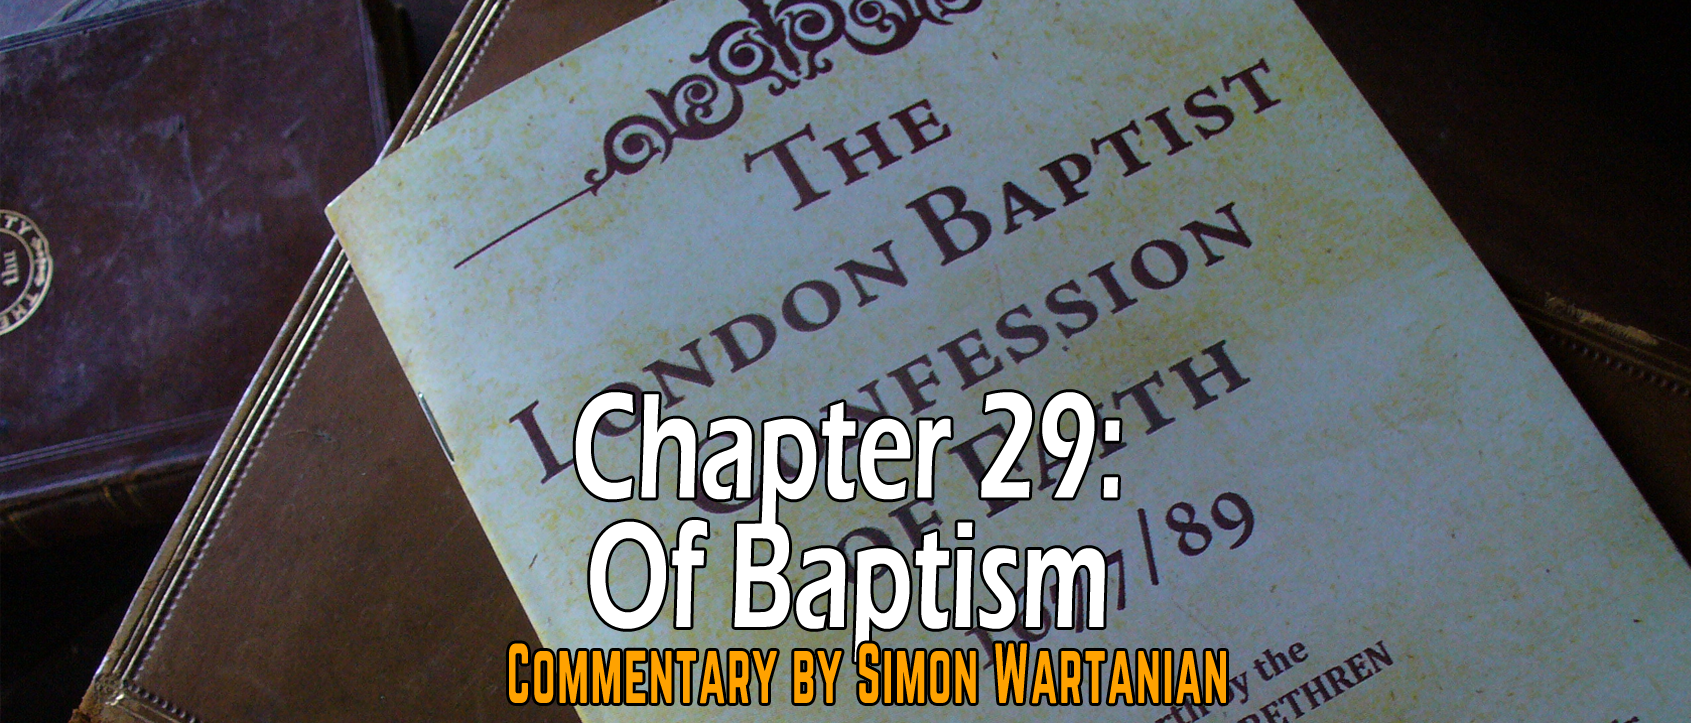 1689 Baptist Confession Chapter 29: Of Baptism - Commentary